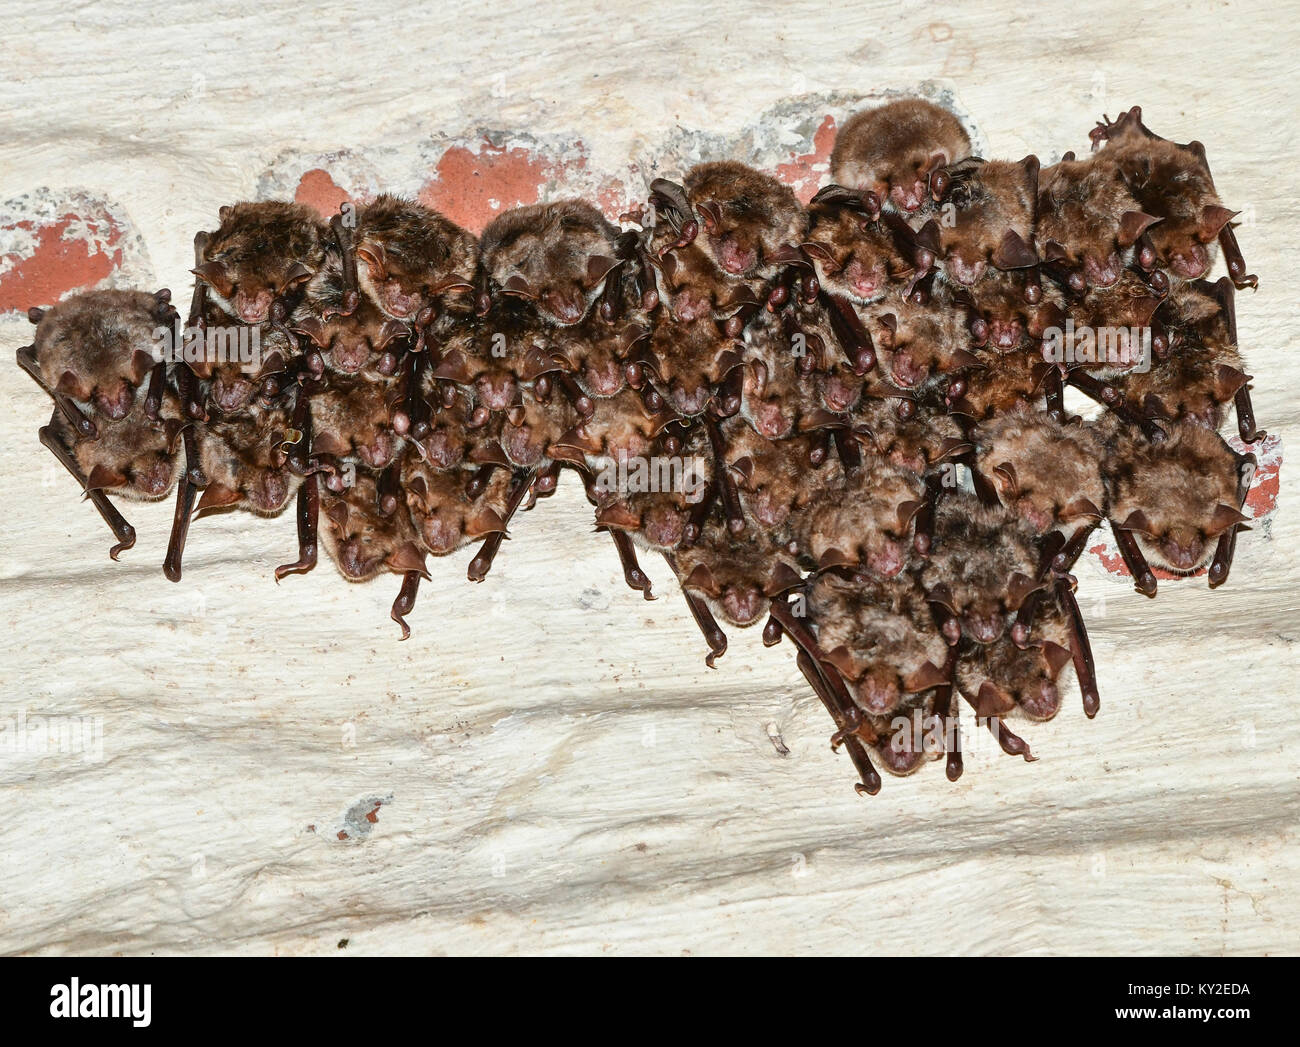 Oder, Germany. 12th Jan, 2018. A group of bats hangs from the ceiling of an old brewery in Frankfurt on the Oder, - Stock Image